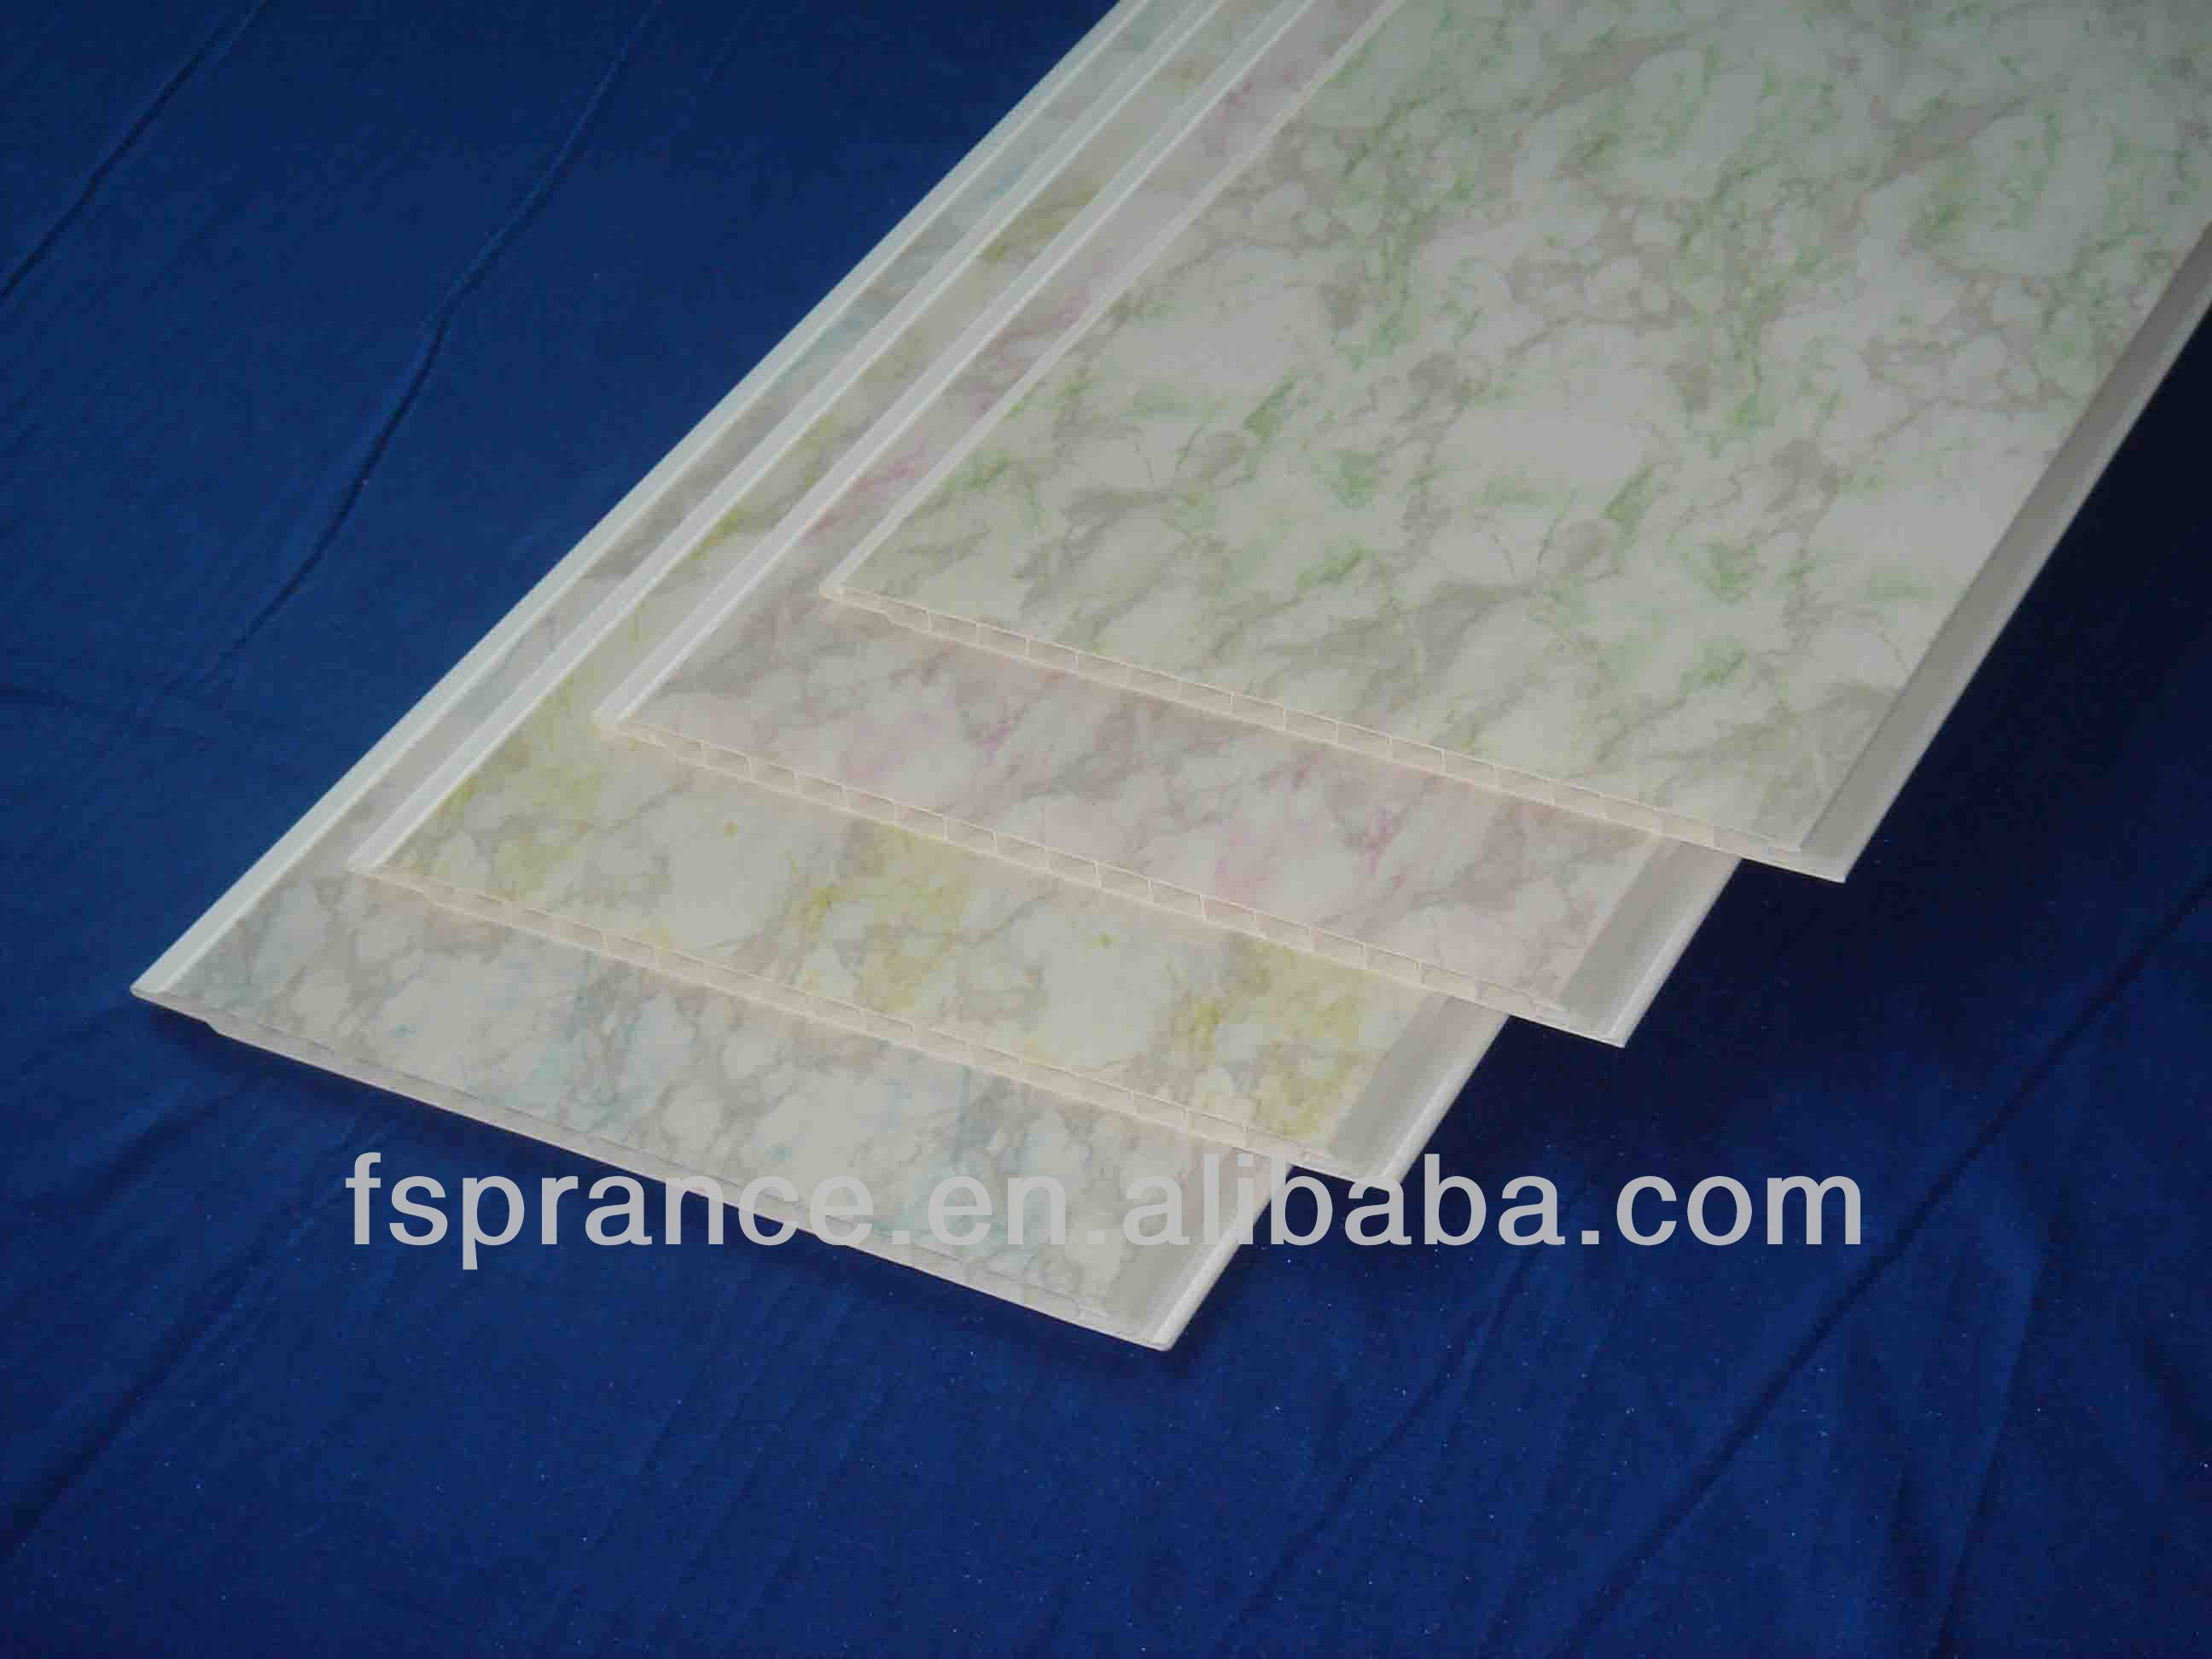 Pvc Wall Panel  Pvc Wall Panel Suppliers And Manufacturers At. Pvc Wall Panels For Bathrooms   Sylve net